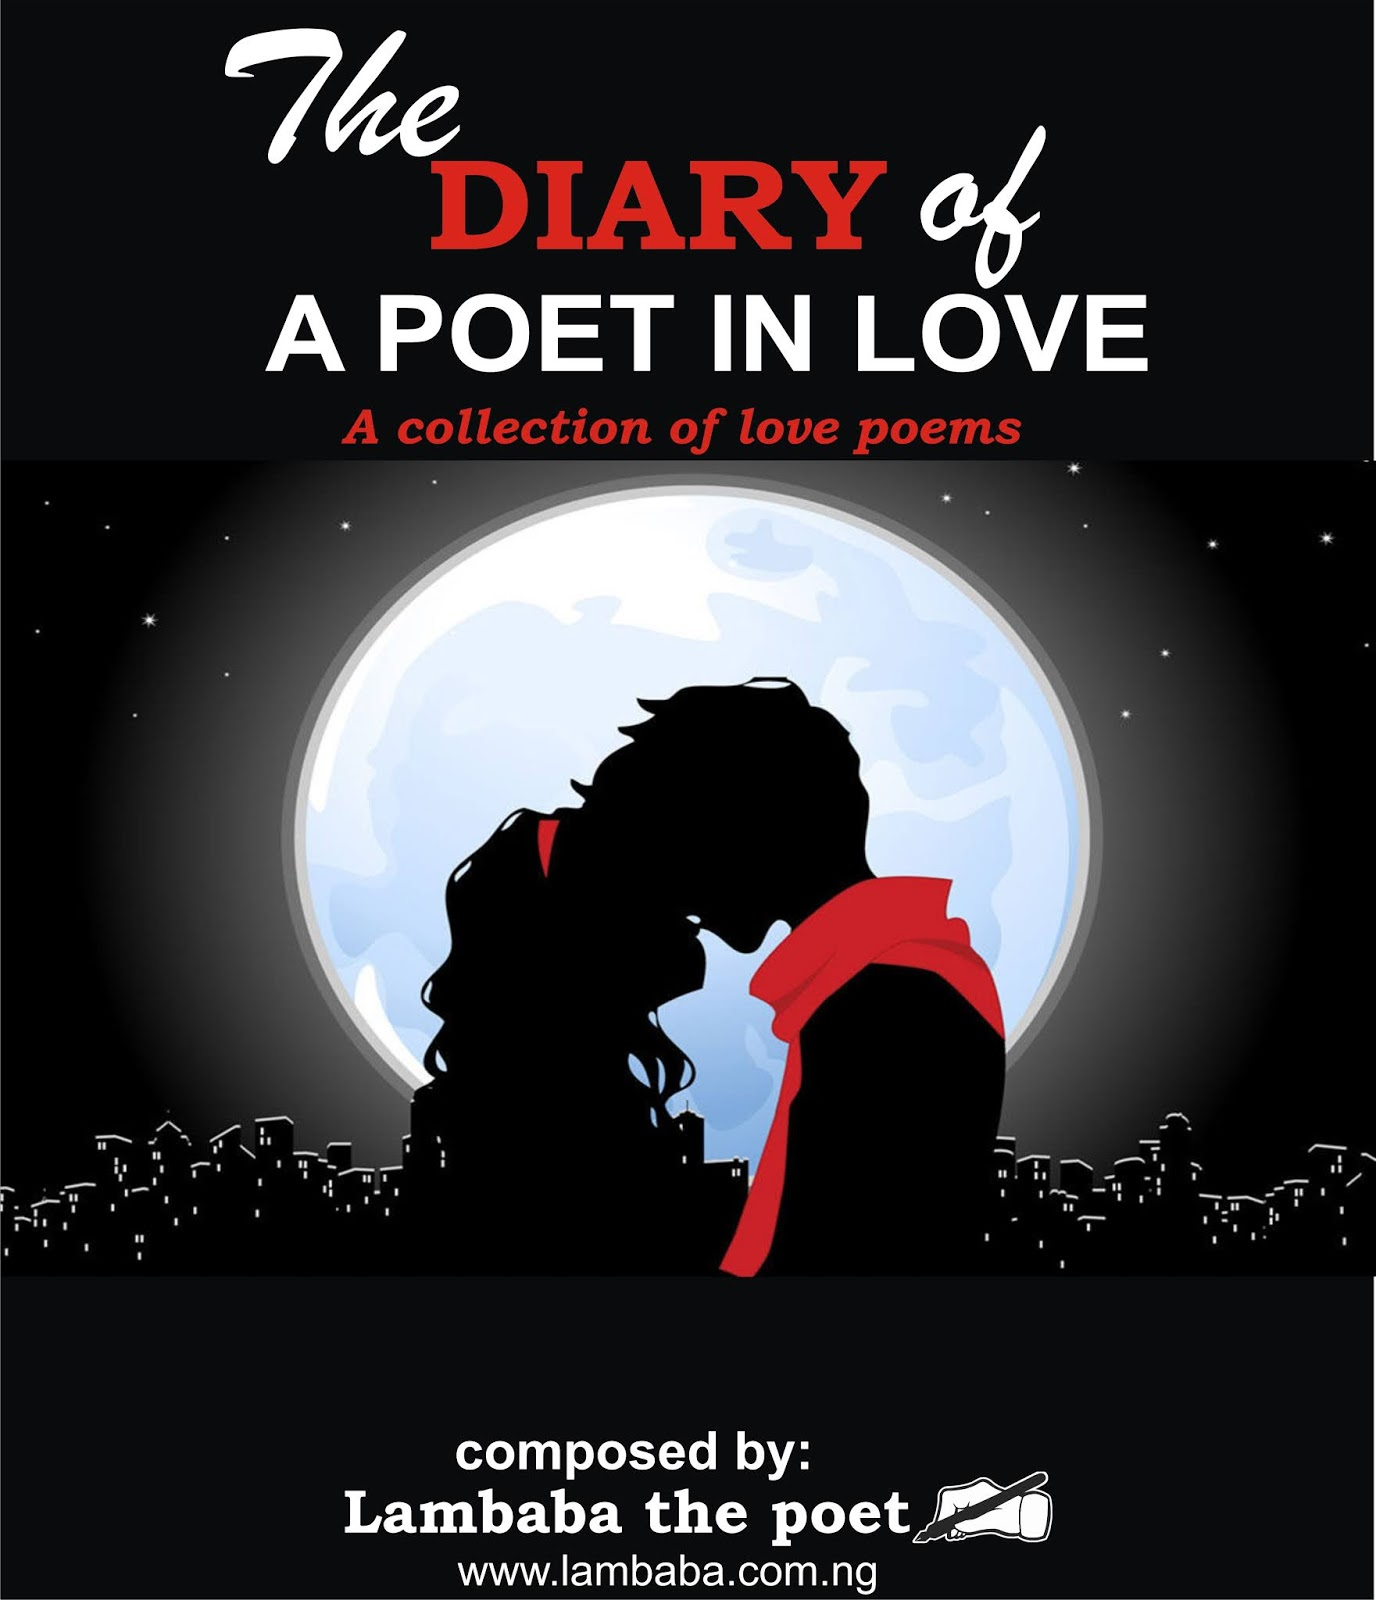 BOOK RELEASE: THE DIARY OF A POET IN LOVE | LAMBABA THE POET